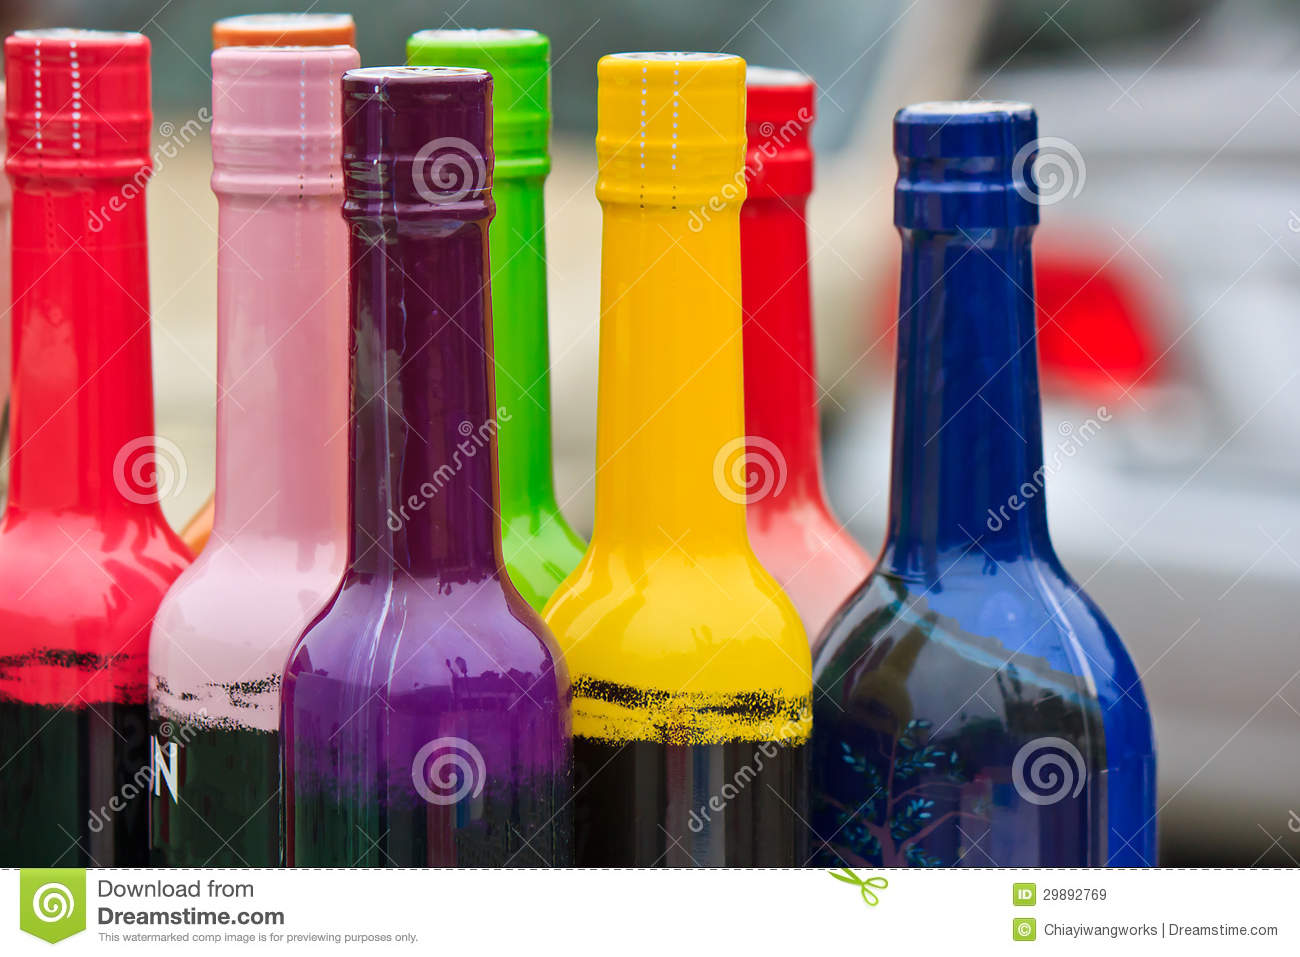 Color bottles royalty free stock images image 29892769 for Where to buy colored wine bottles